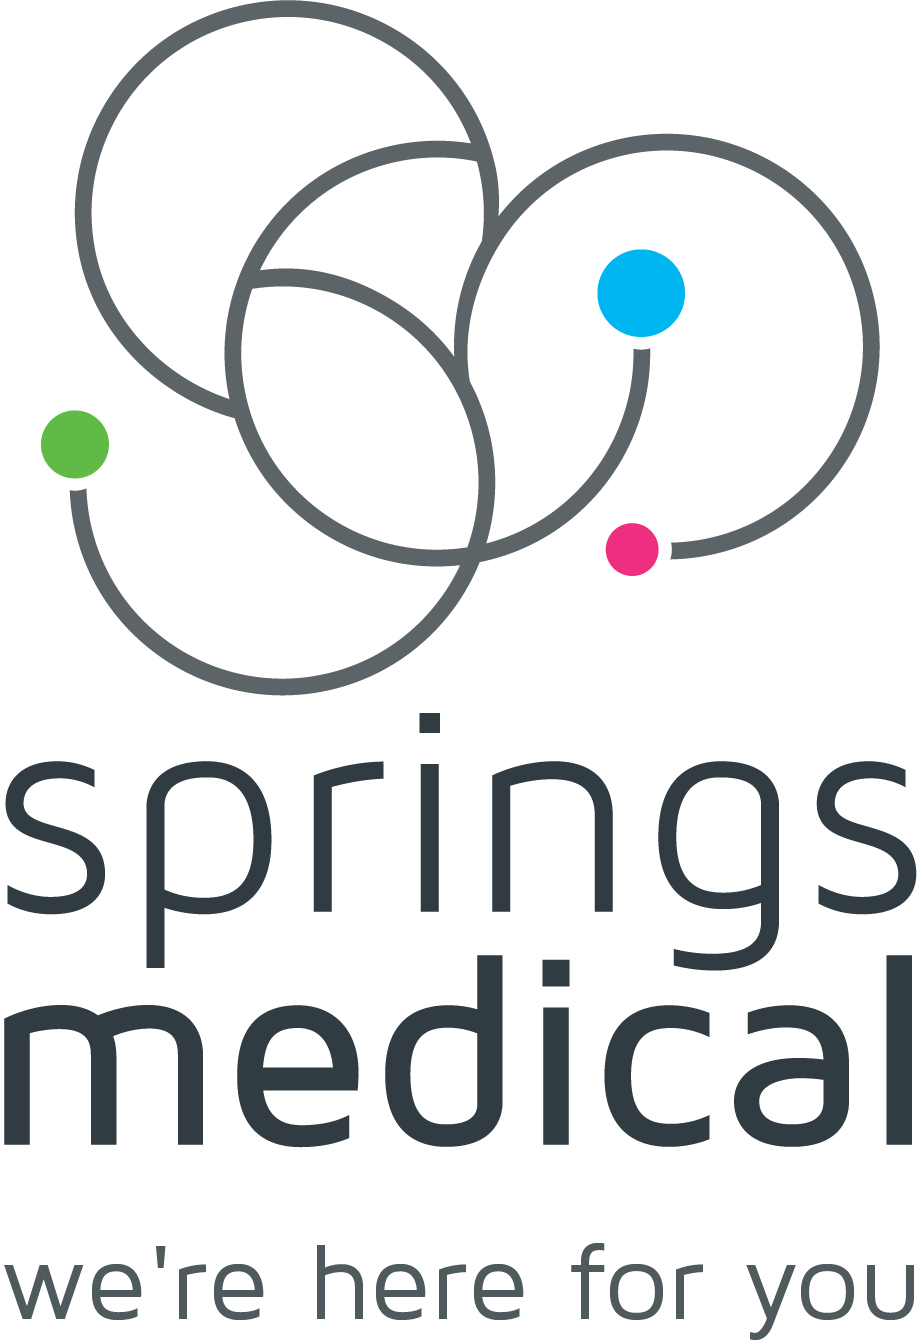 Springs Medical Centre